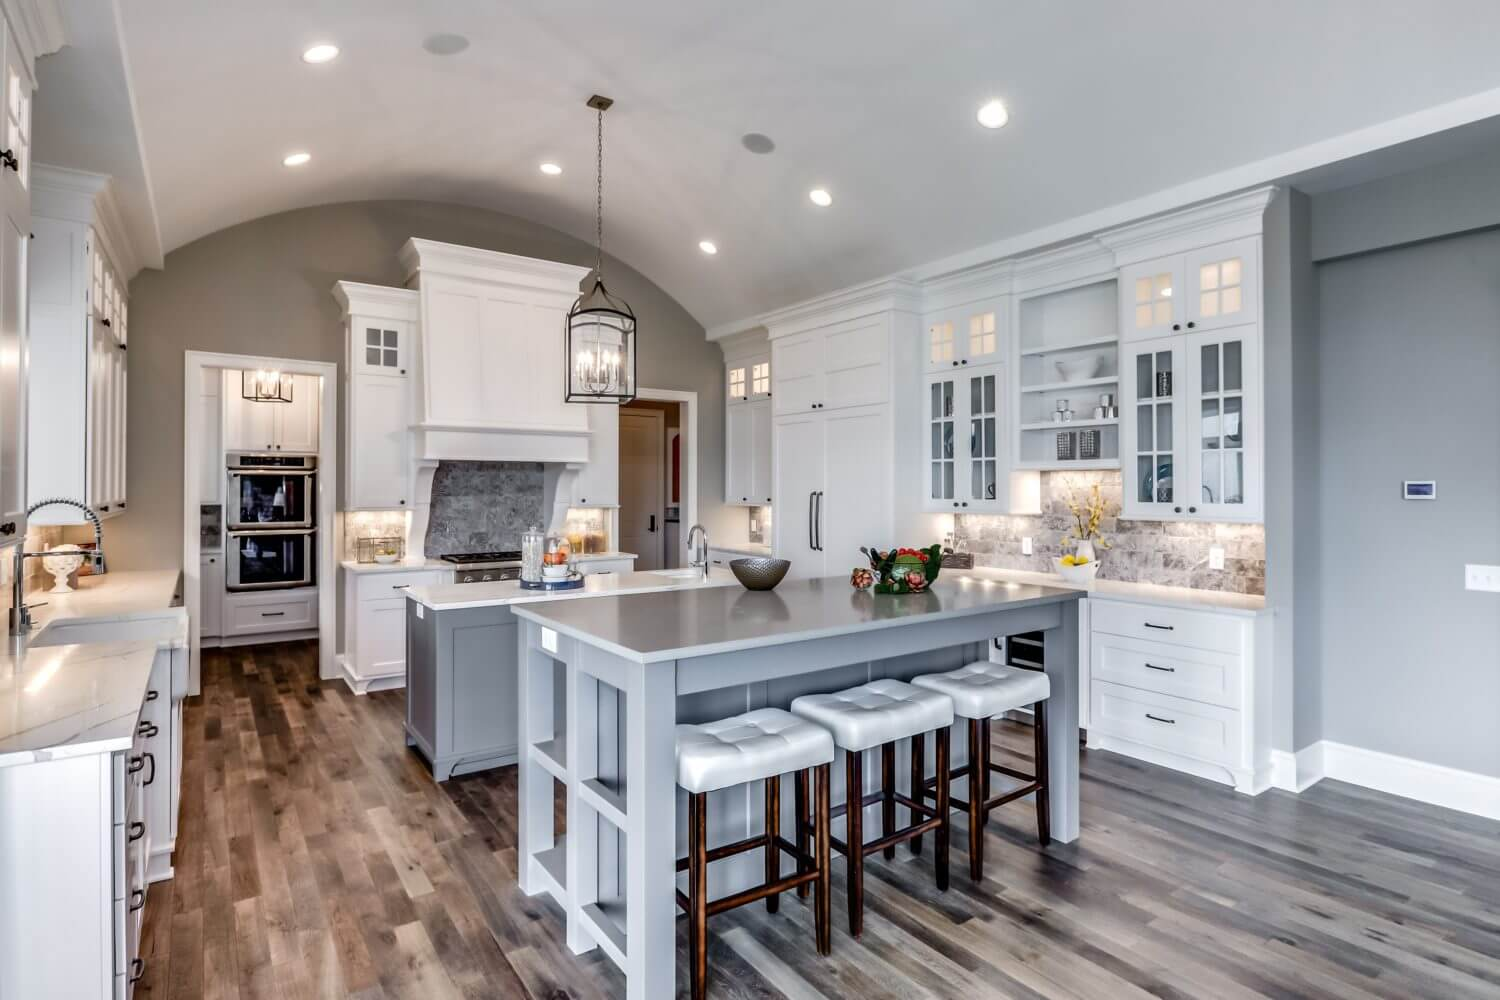 Custom Appliance Pantries The New Trend Kitchen Pantry Designs Norton Homes